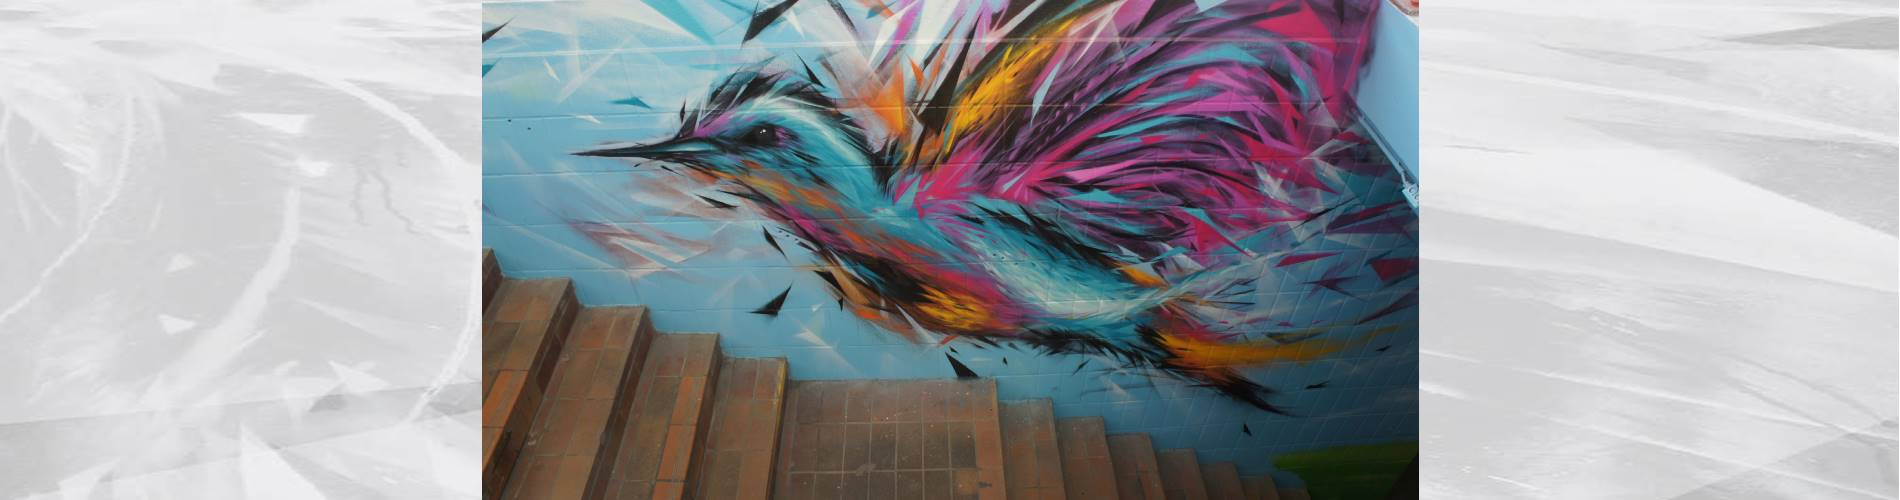 train station graffiti tubize bird